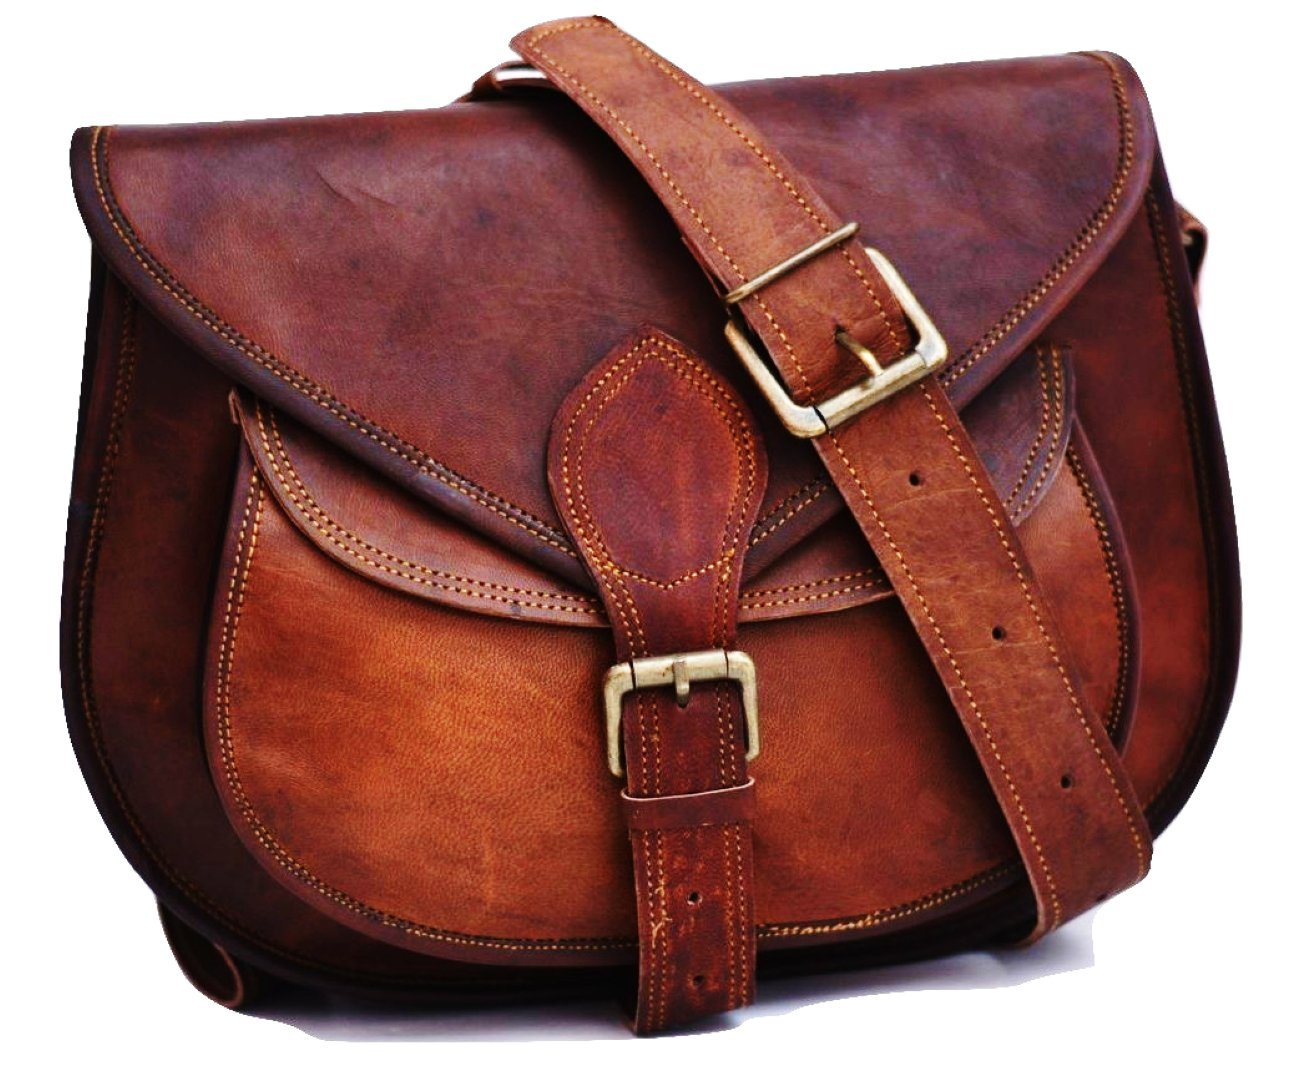 Handmade Women Vintage Style Genuine Brown Leather Cross Body Shoulder Bag Handmade Purse SatchelandFable